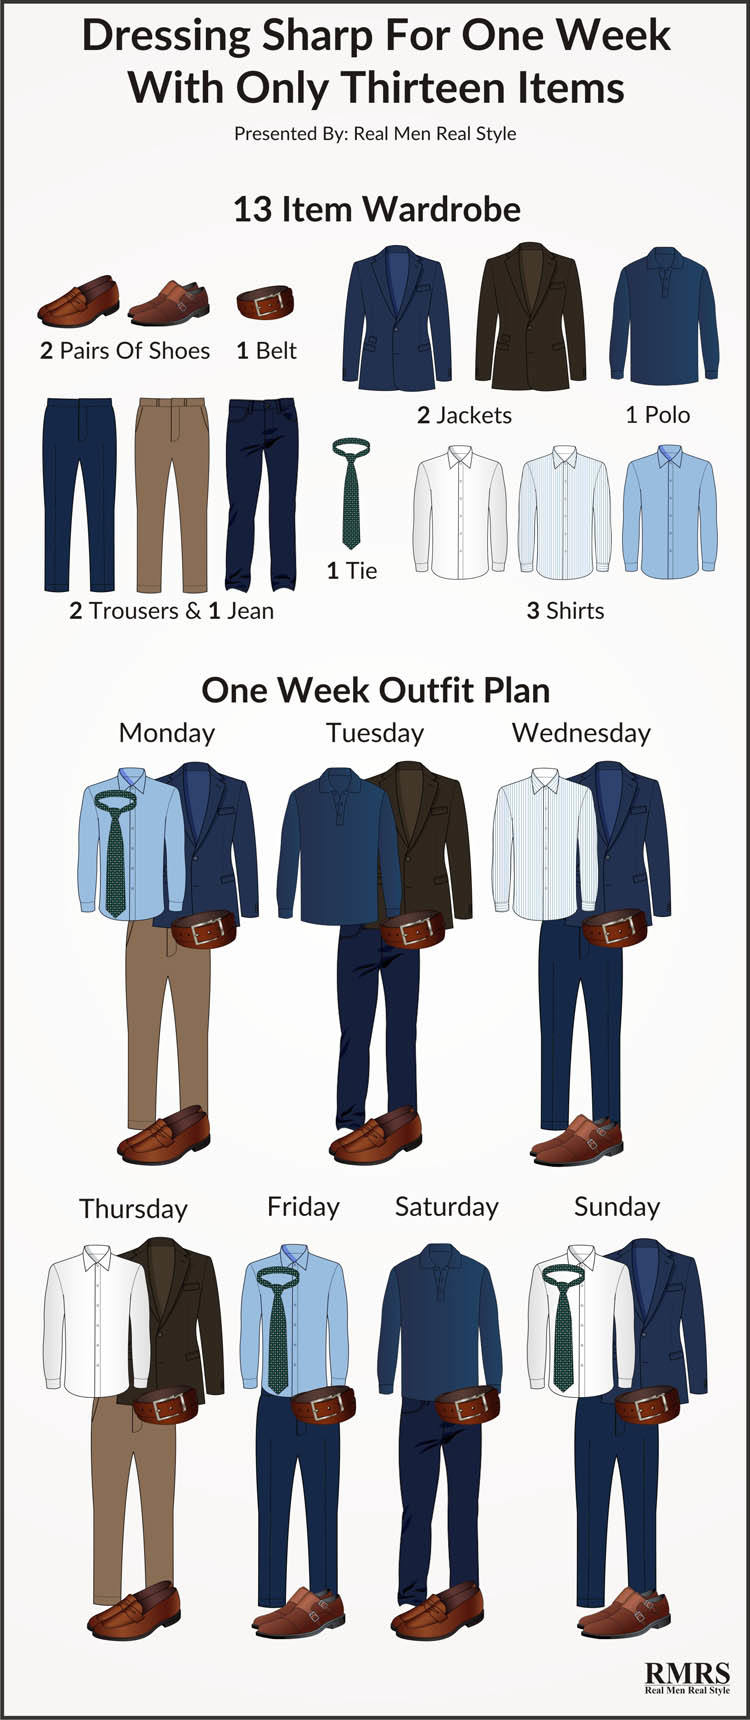 32 Essential Wardrobe Items For Men